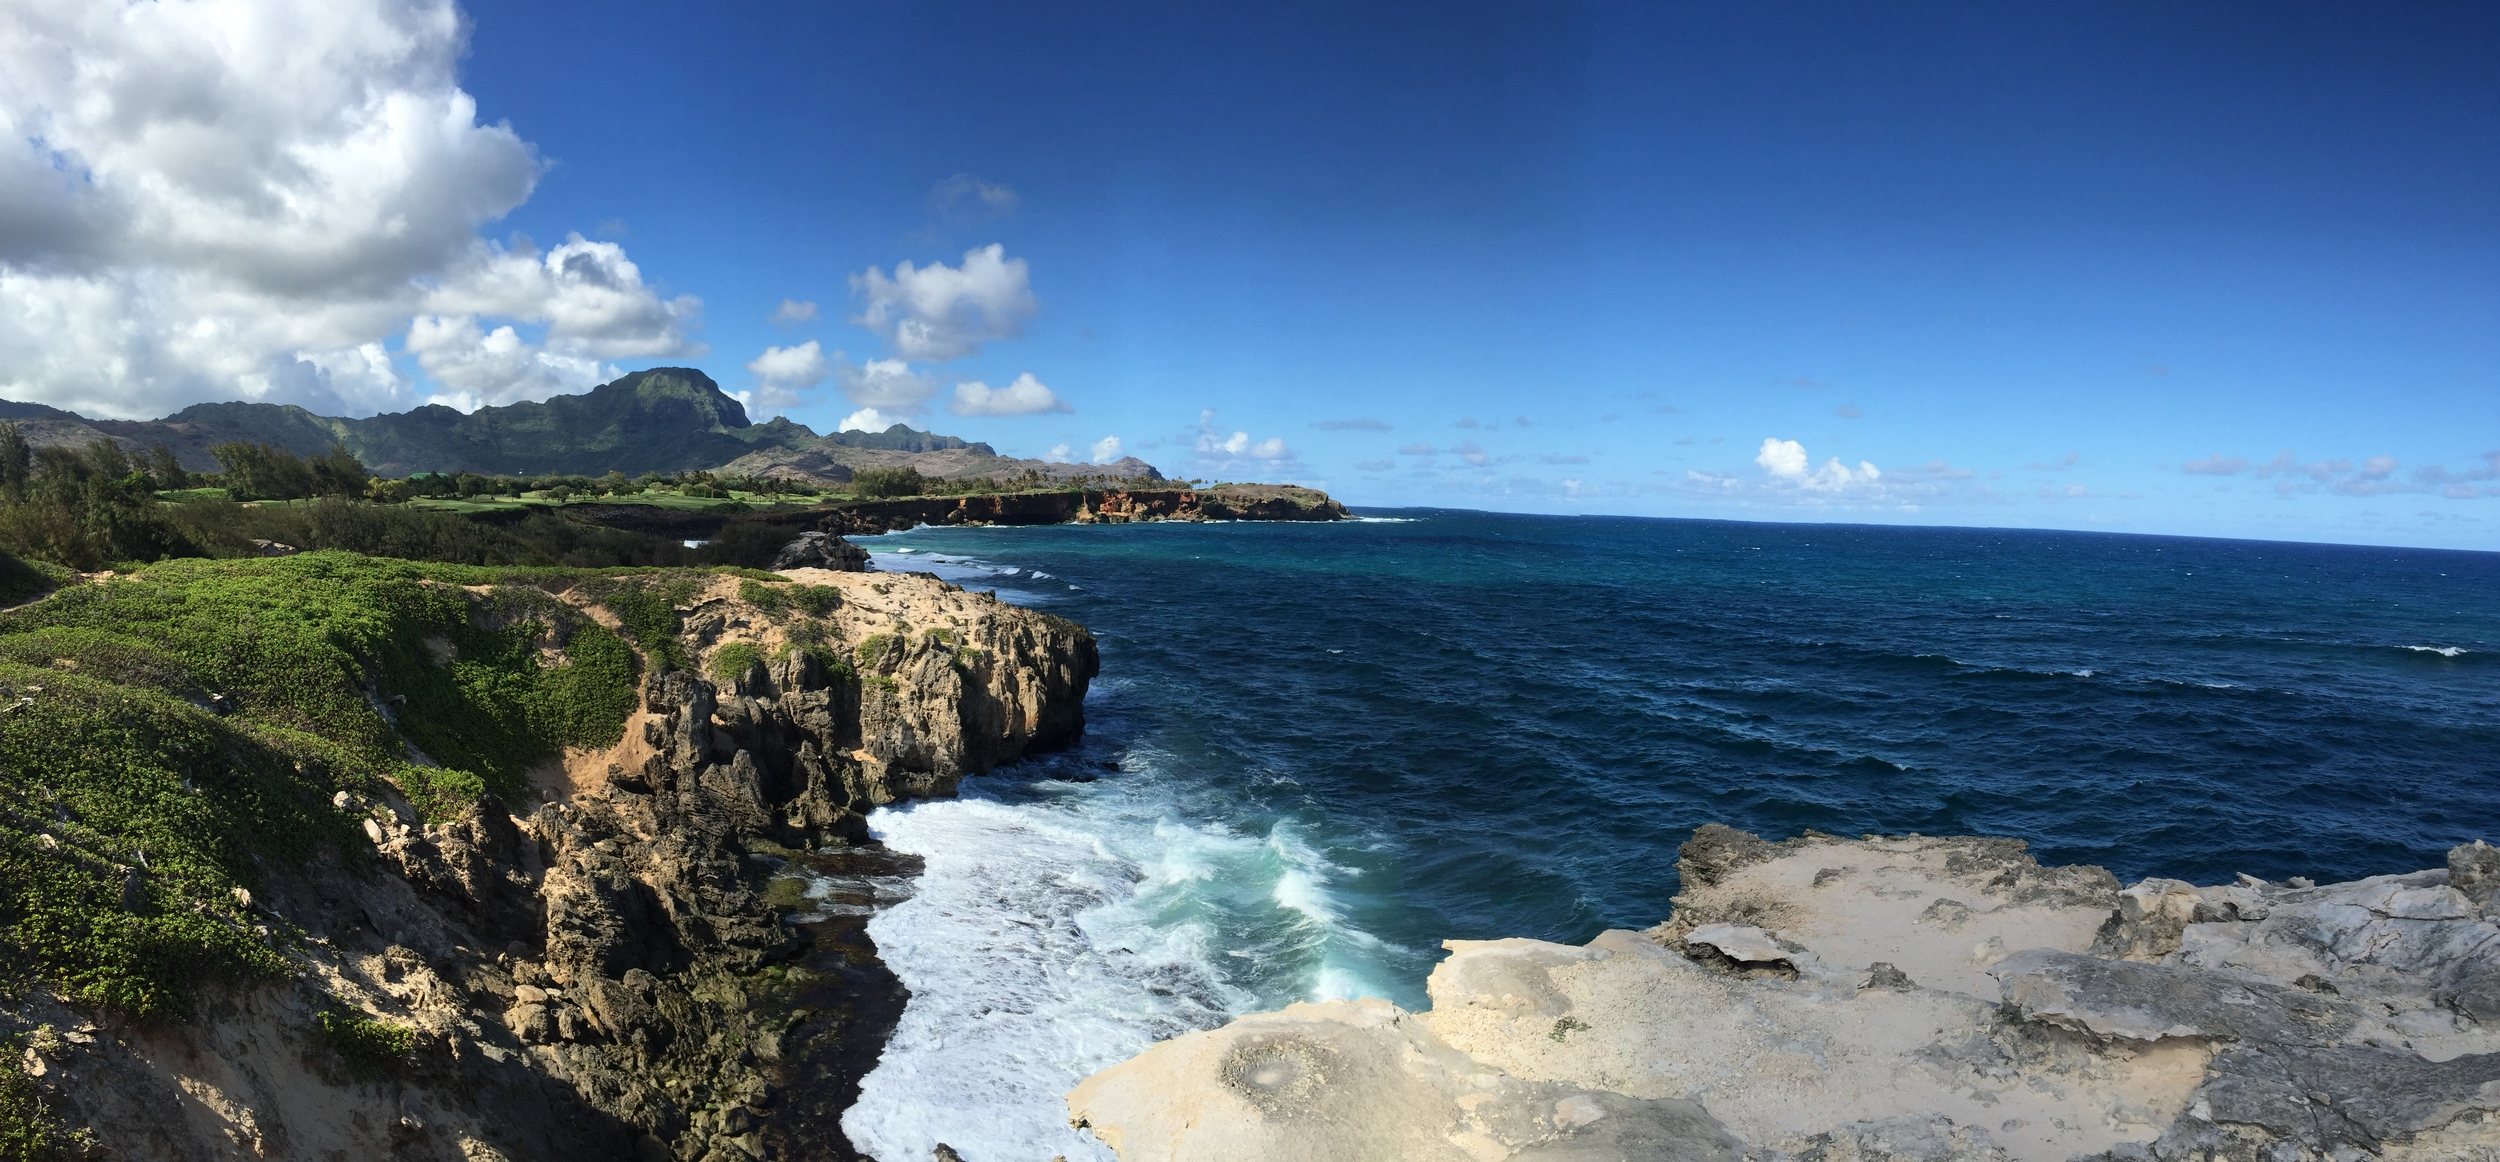 Maha'ulepu Heritage Trail in Poipu // Trail Hike in Kauai, Hawaii // via Jitney's Journeys